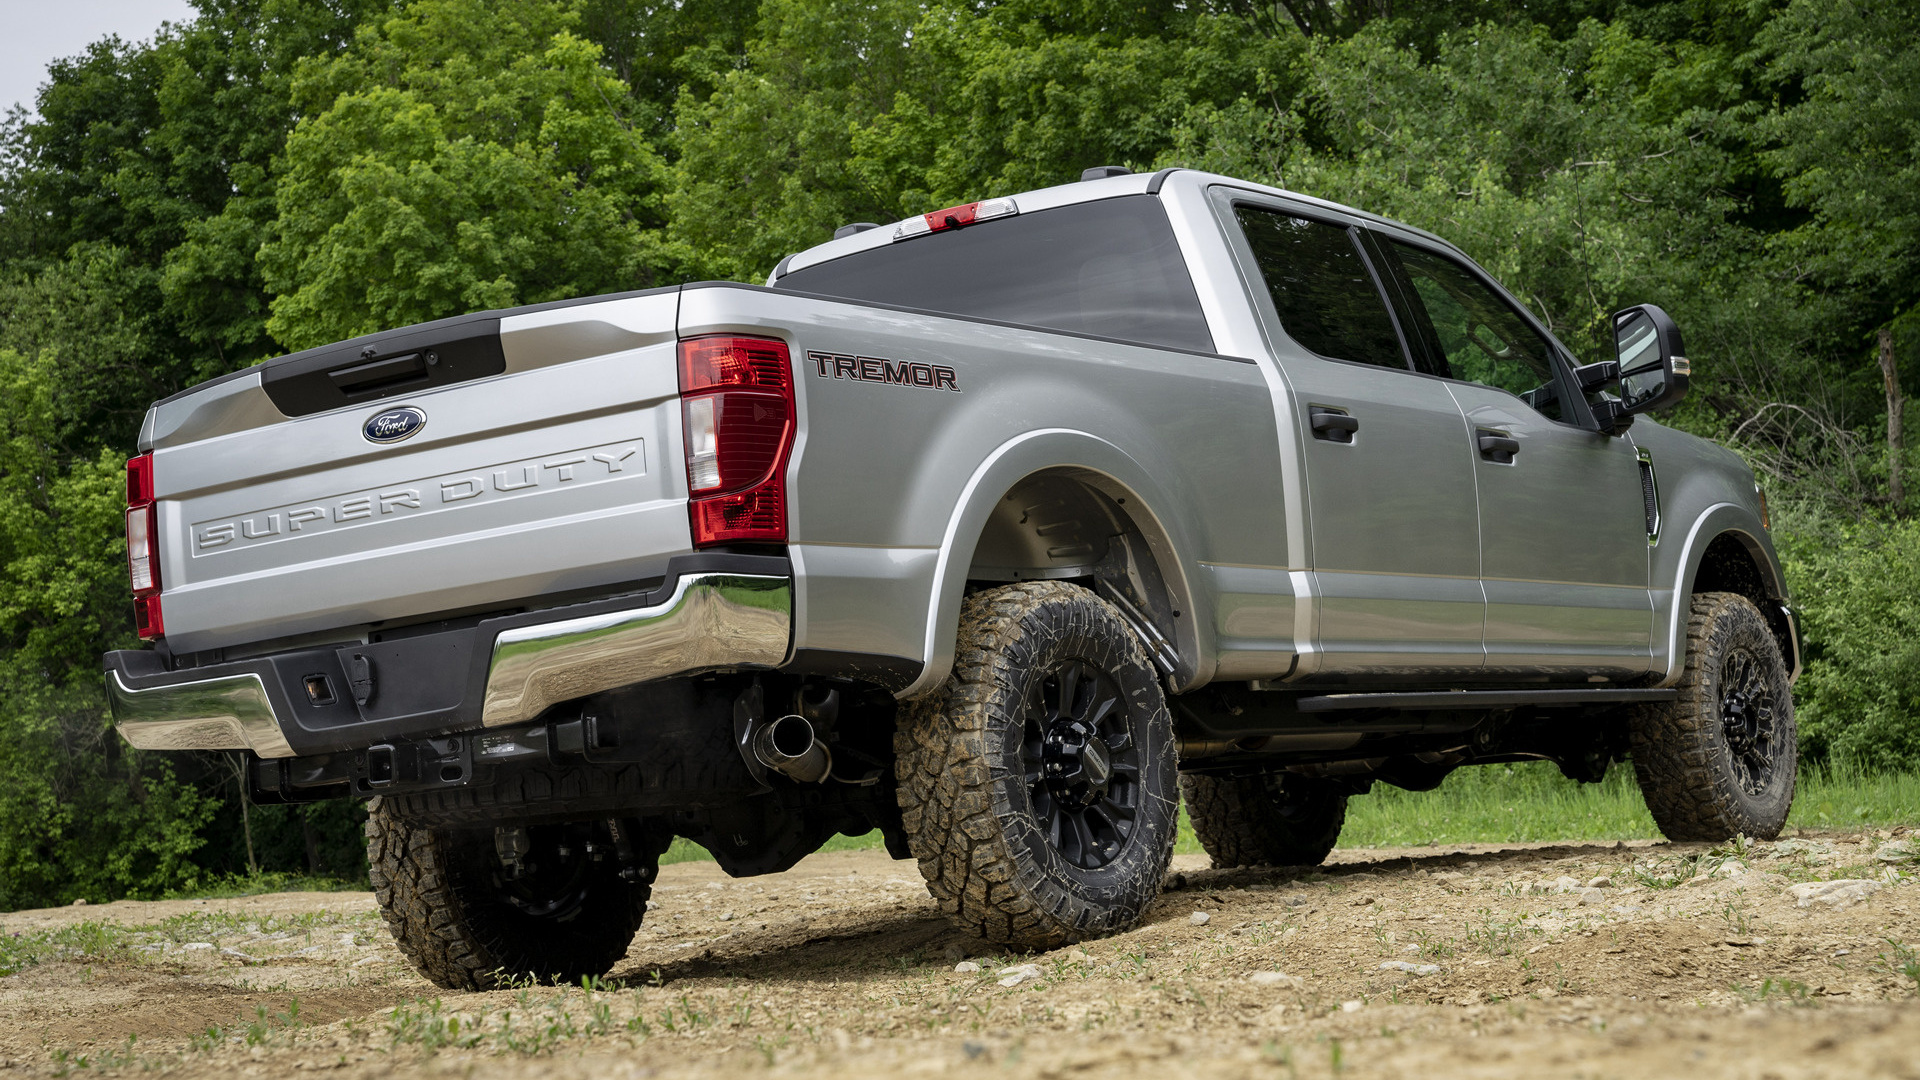 ford   super duty xlt crew cab tremor  road package wallpapers  hd images car